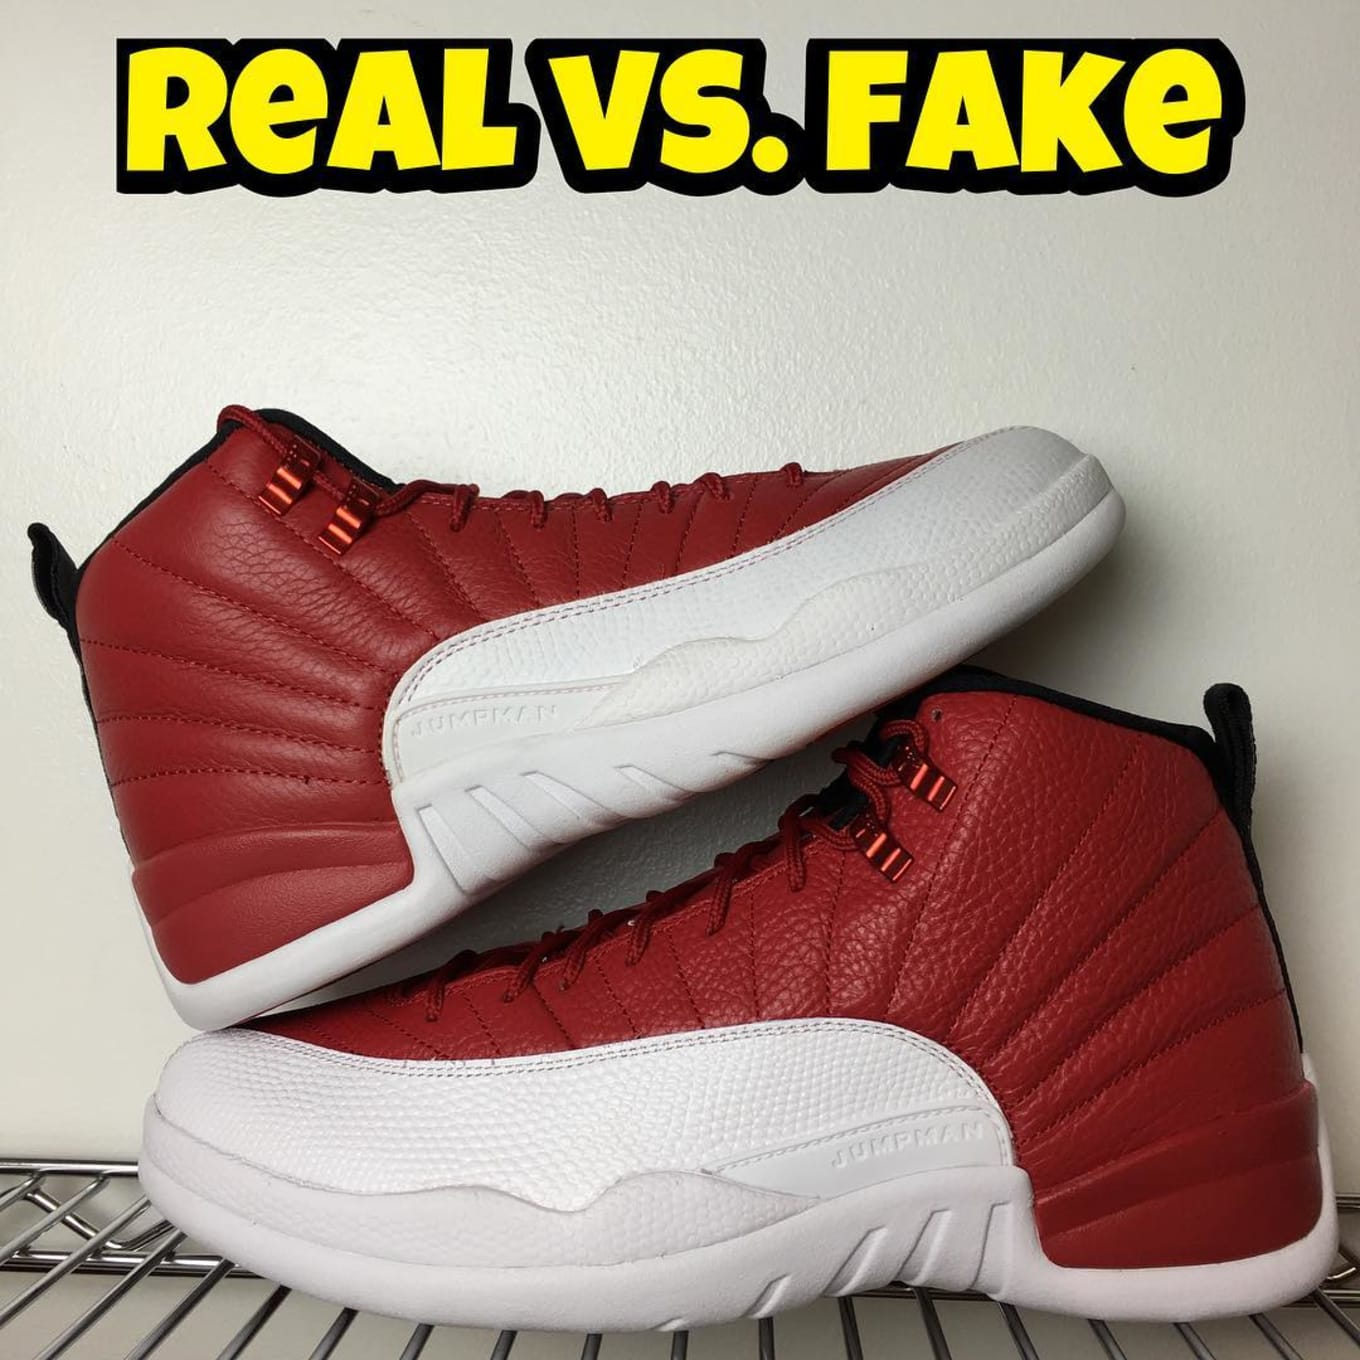 ff514cc01bb5 Air Jordan XII 12 Gym Red Real Fake Legit Check